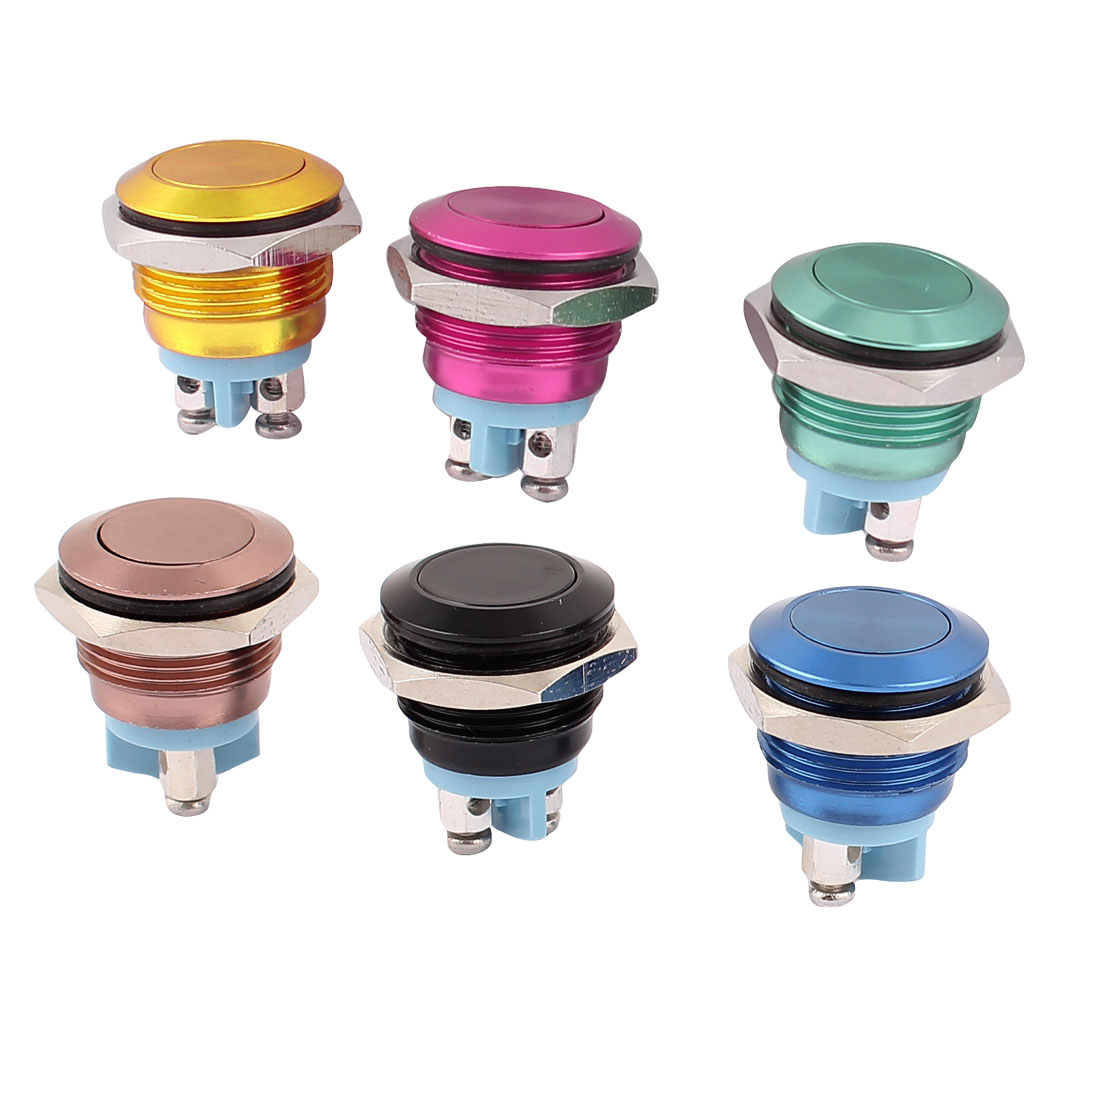 6Pcs AC 250V Black Brown Blue Red Green Yellow Flat Head SPST Momentary Push Button Switch